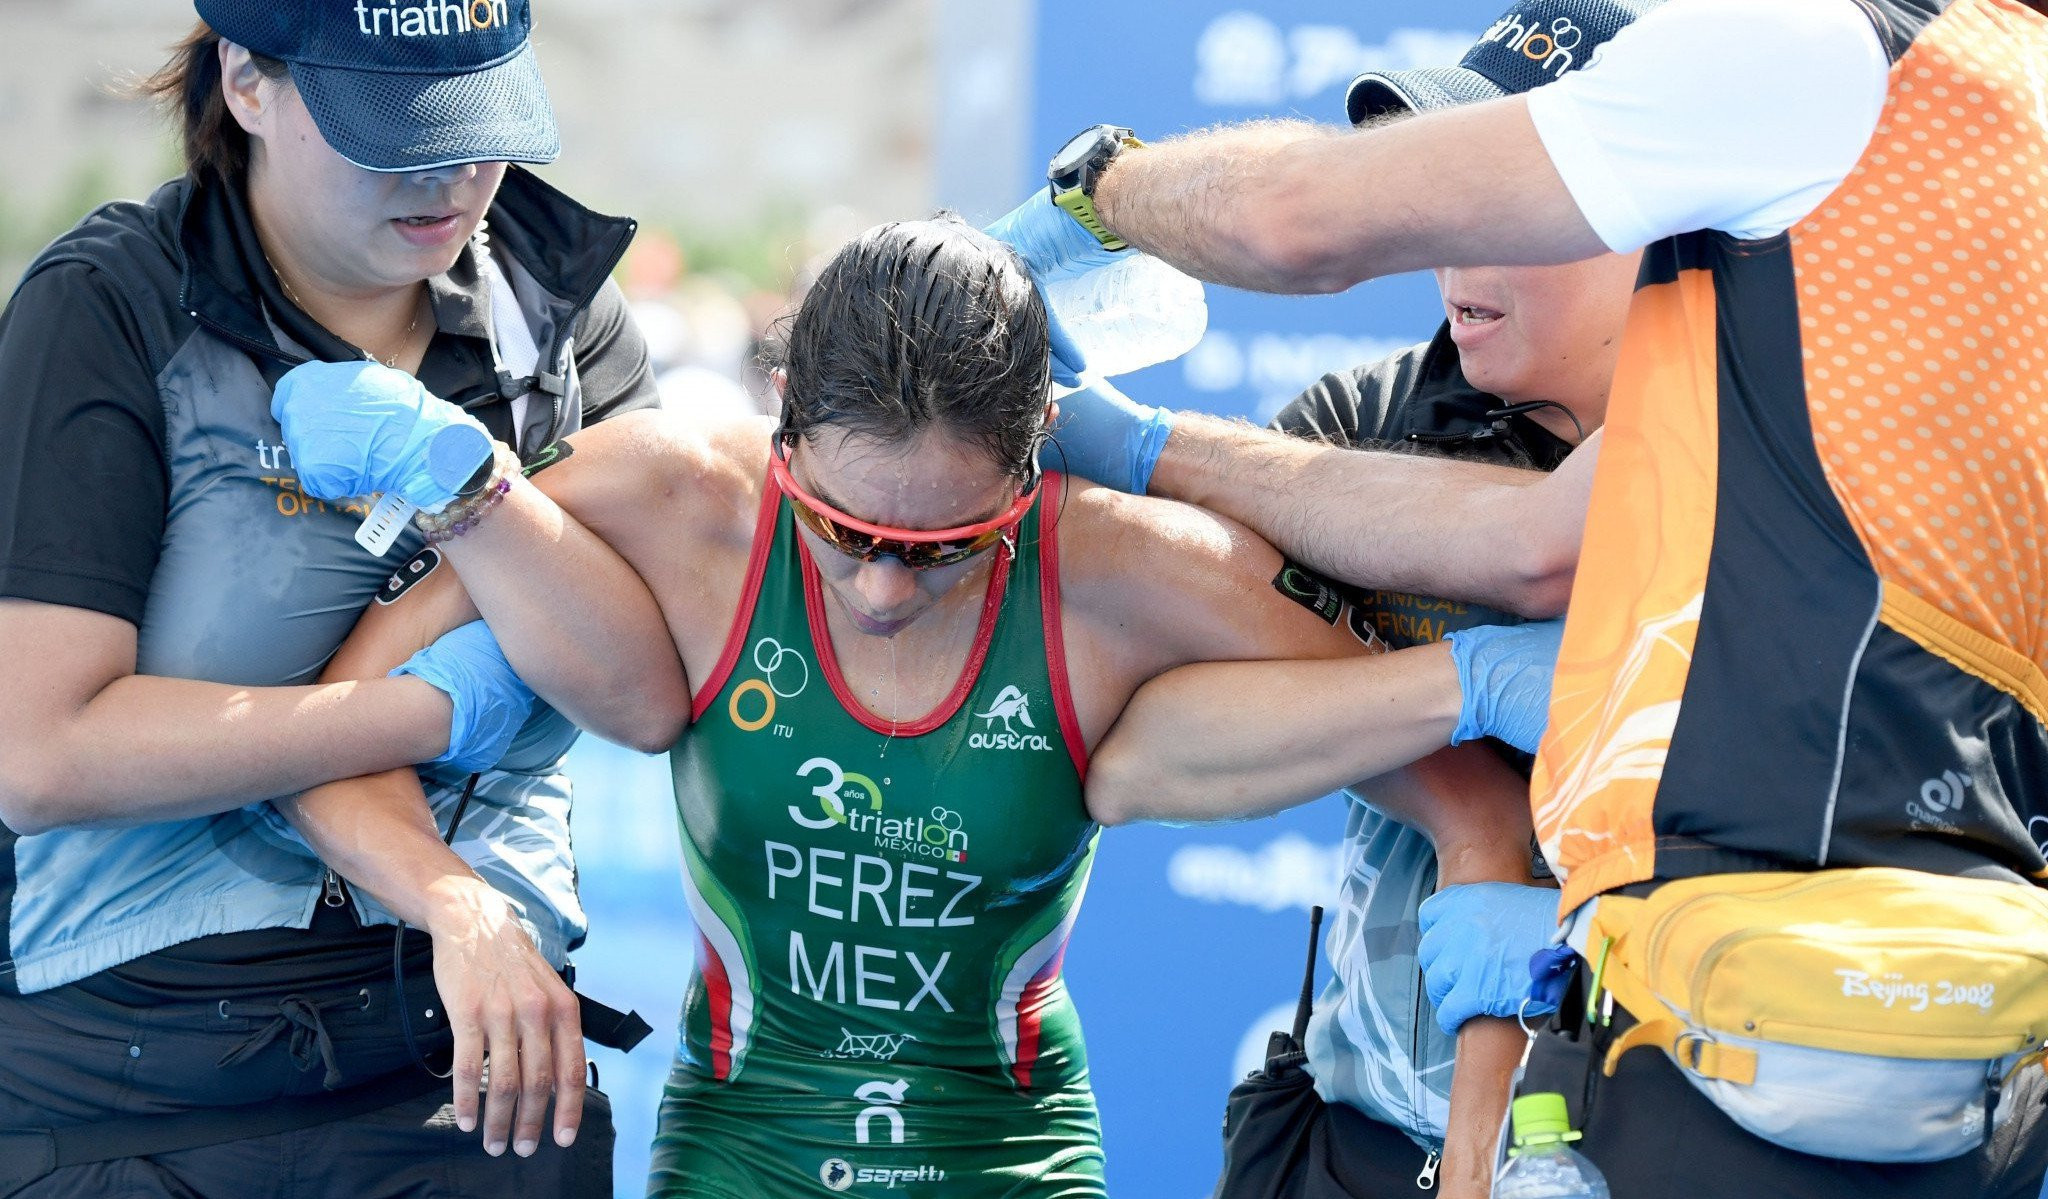 Mexico's Cecilia Pérez was among the athletes to show the effects of the extreme heat at the end of the Tokyo 2020 test event for triathlon in August, but there are no suggestions that event will be moved during the Olympics ©Delly Carr/ITU Media